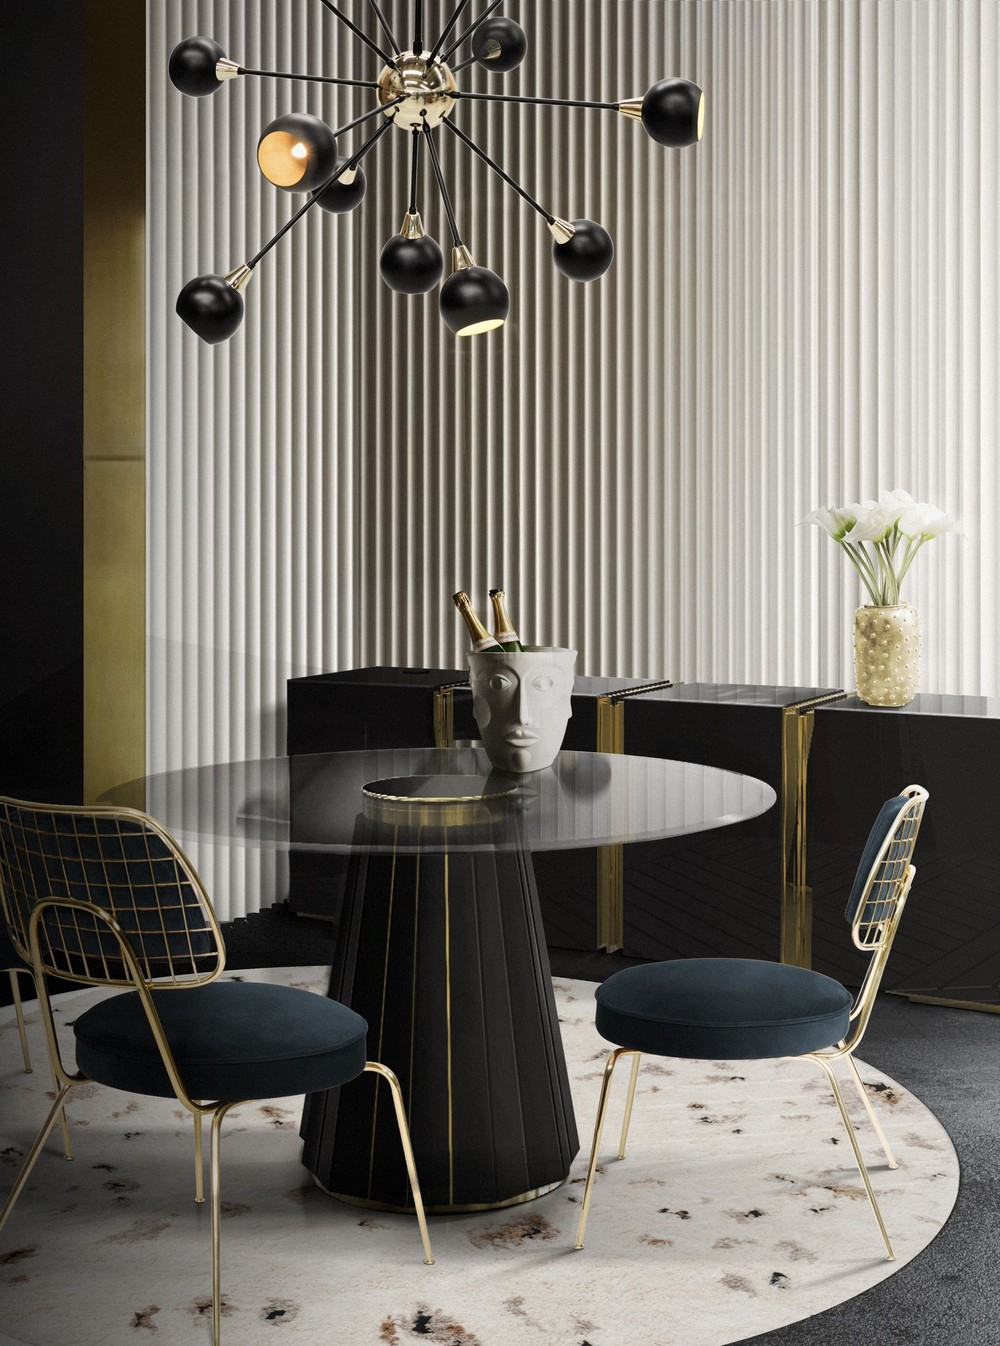 dining tables The Perfect Element For Stylish Settings: 25 Dining Tables You'll Love eSqU7AHQ